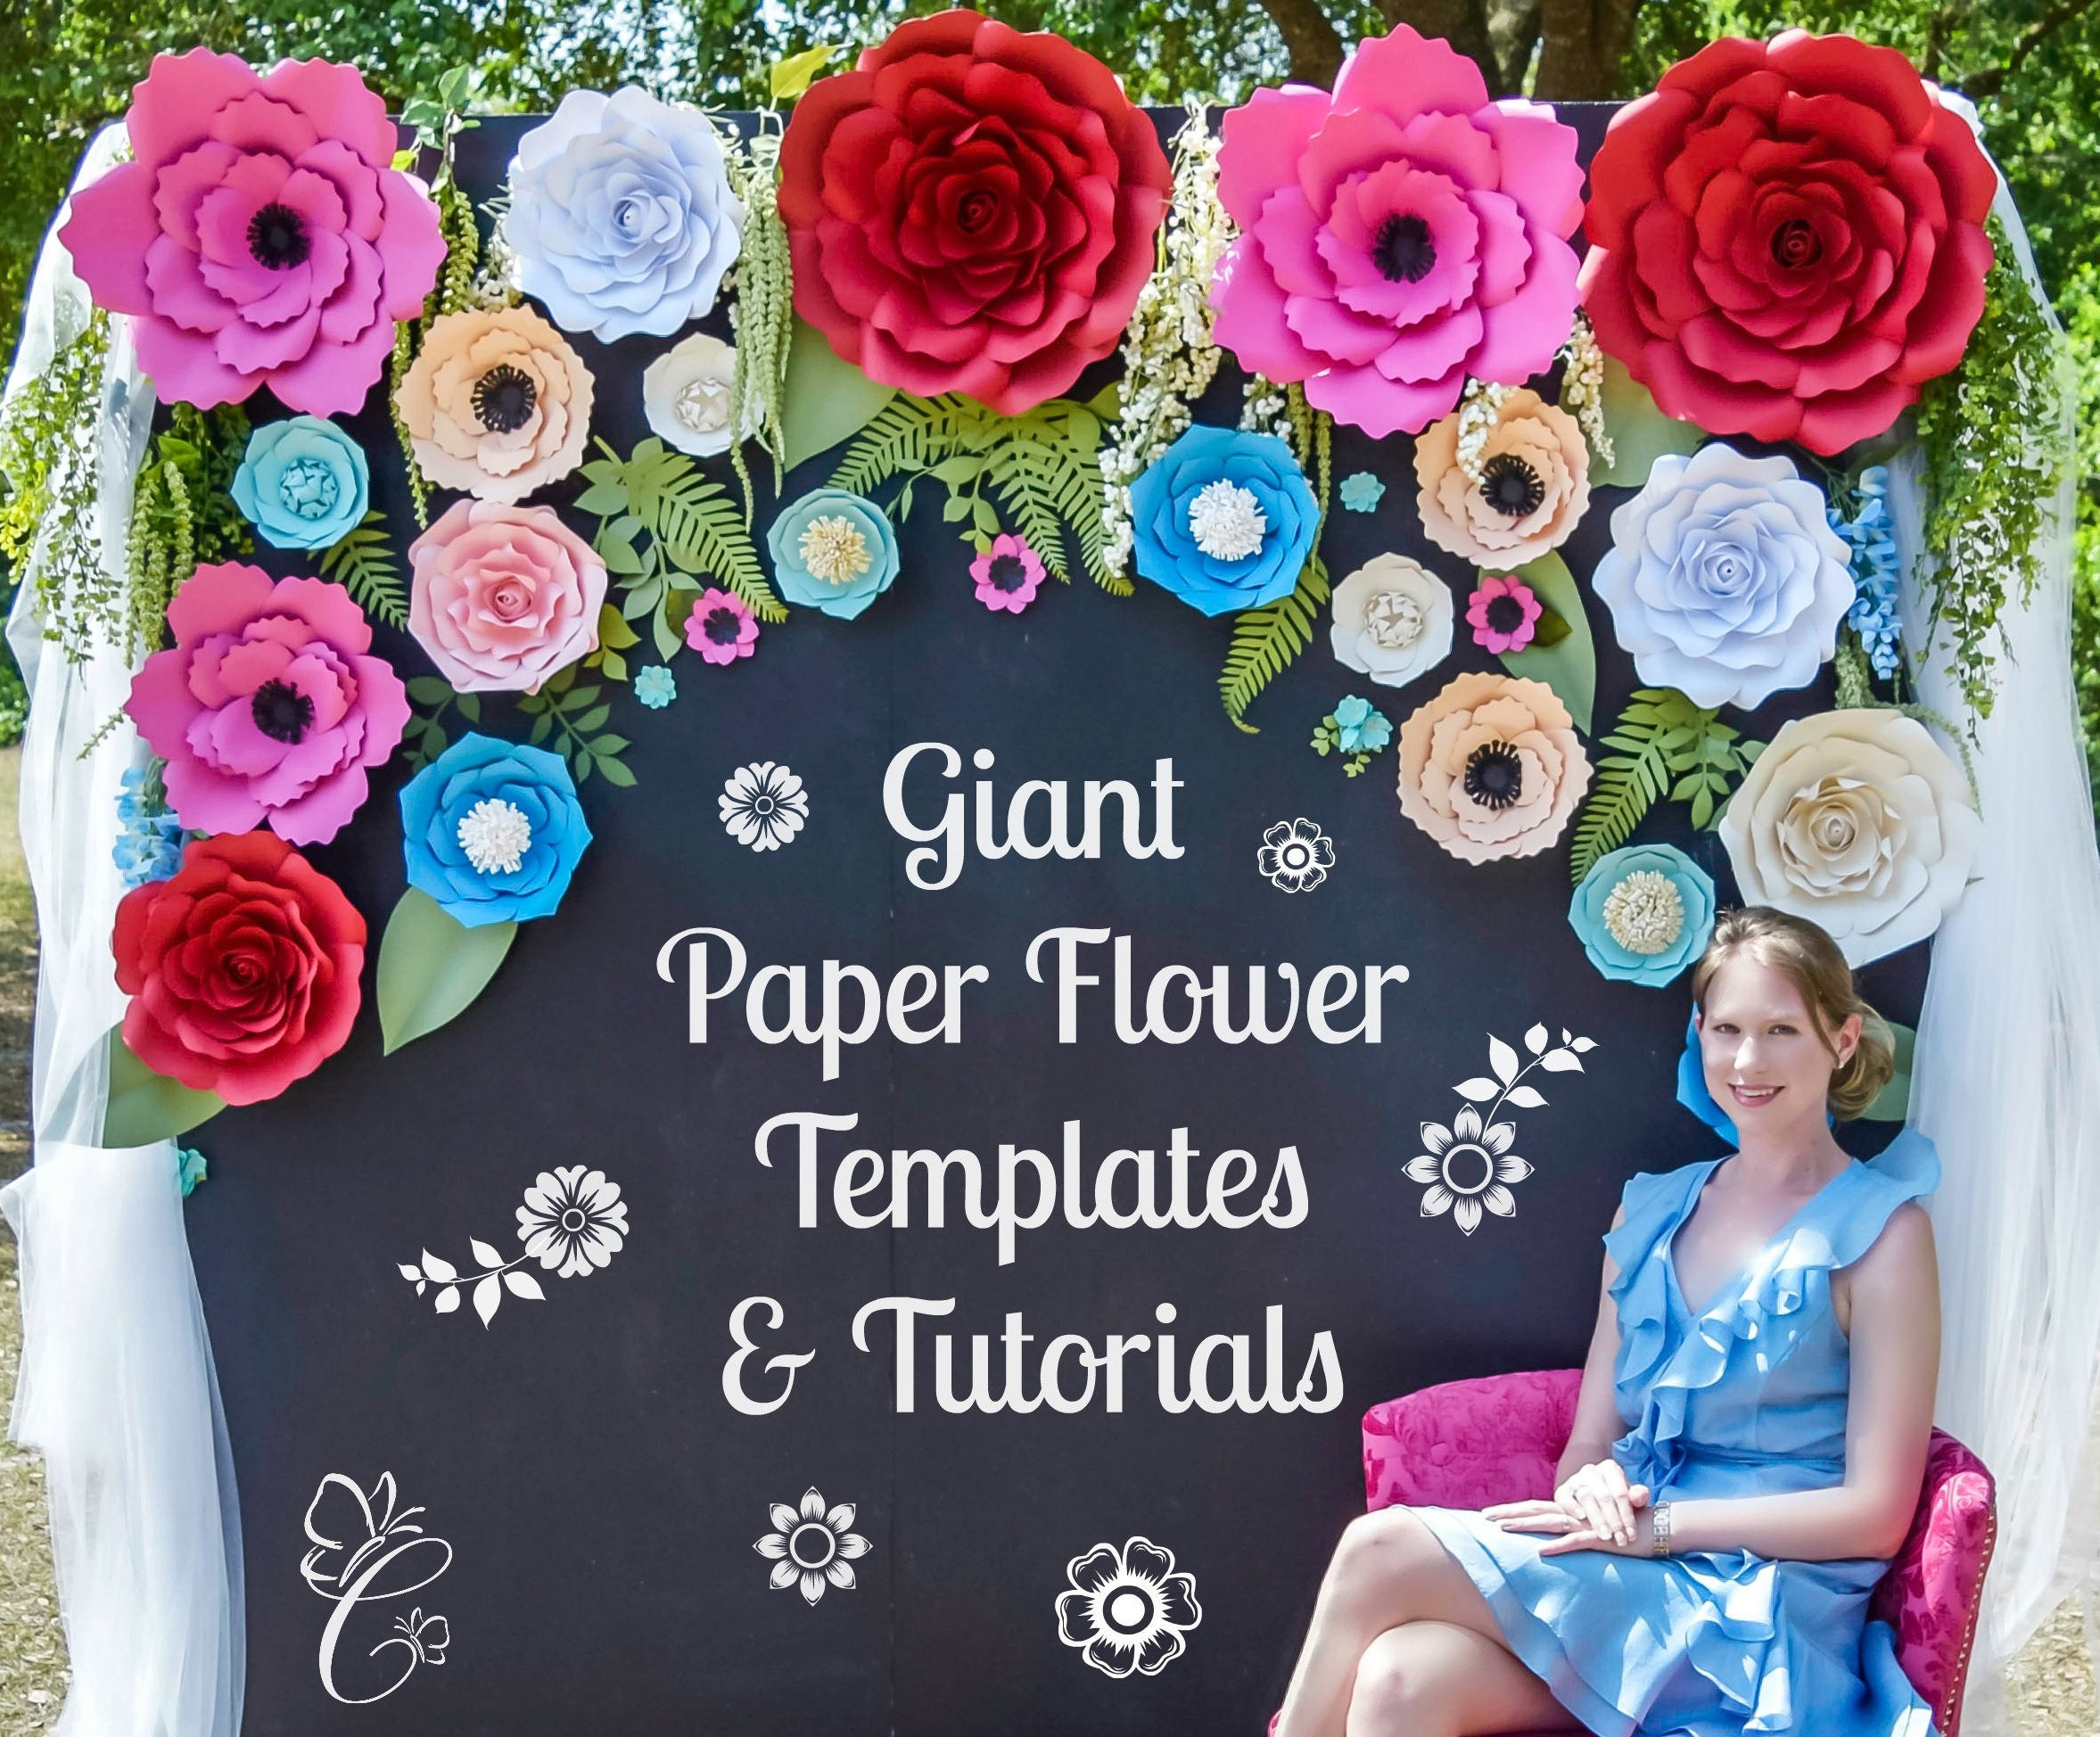 Paper Flower Backdrop Giant Paper Rose Templates Tutorials Wedding Backdrop Decor Large Paper Flowers